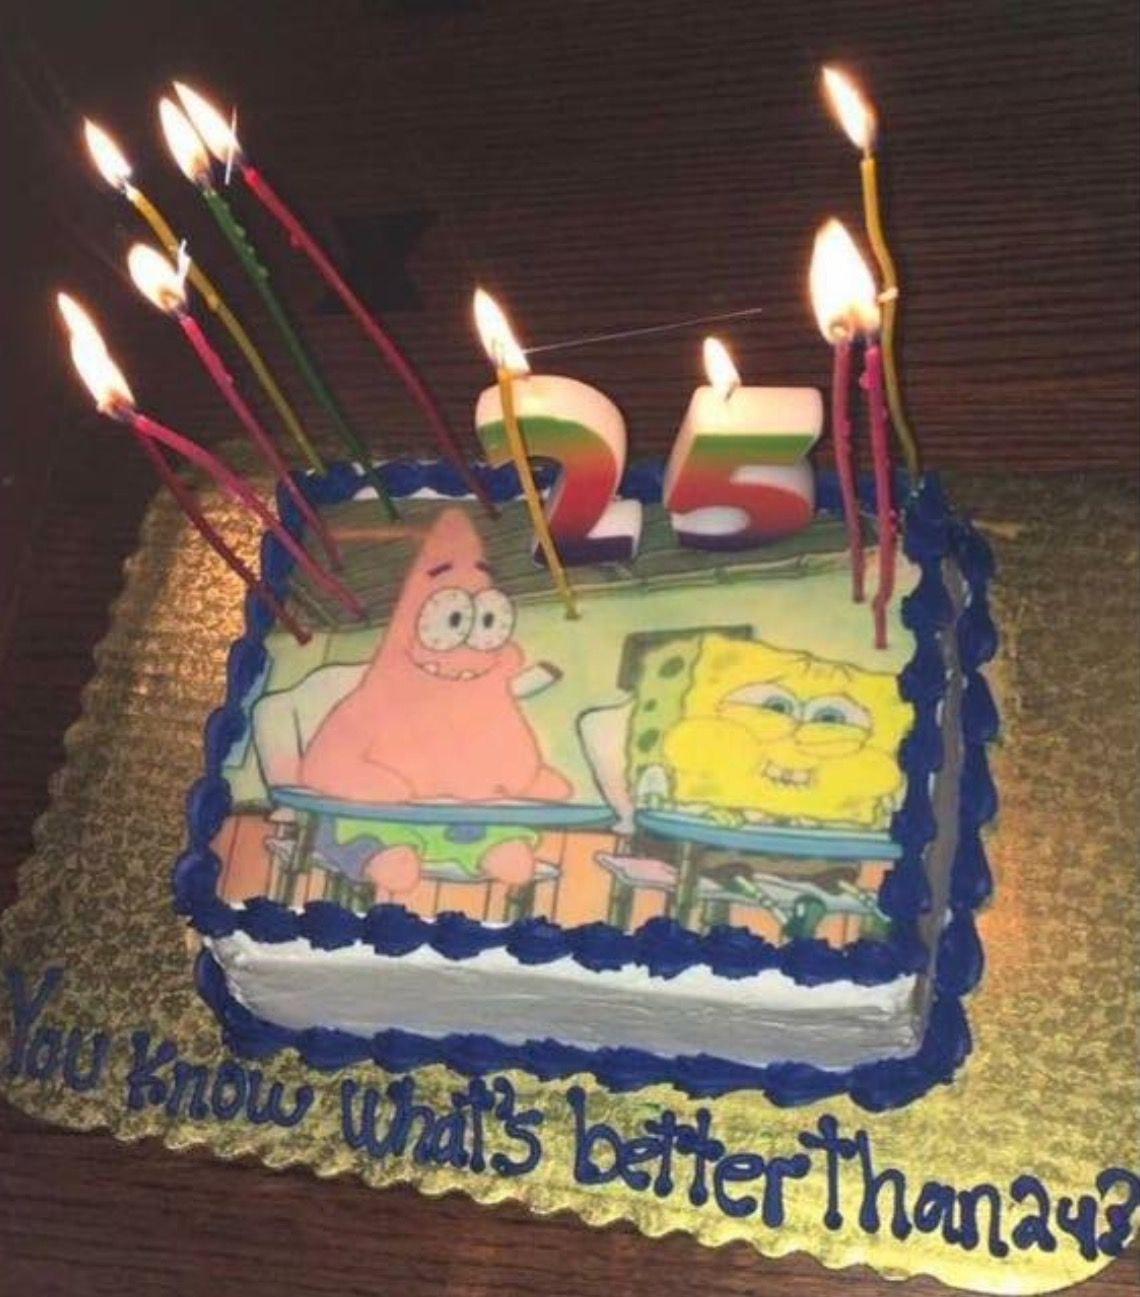 Pleasing Funny Birthday Cakes For Adults 25Th Birthday Cake Spongebob Personalised Birthday Cards Bromeletsinfo